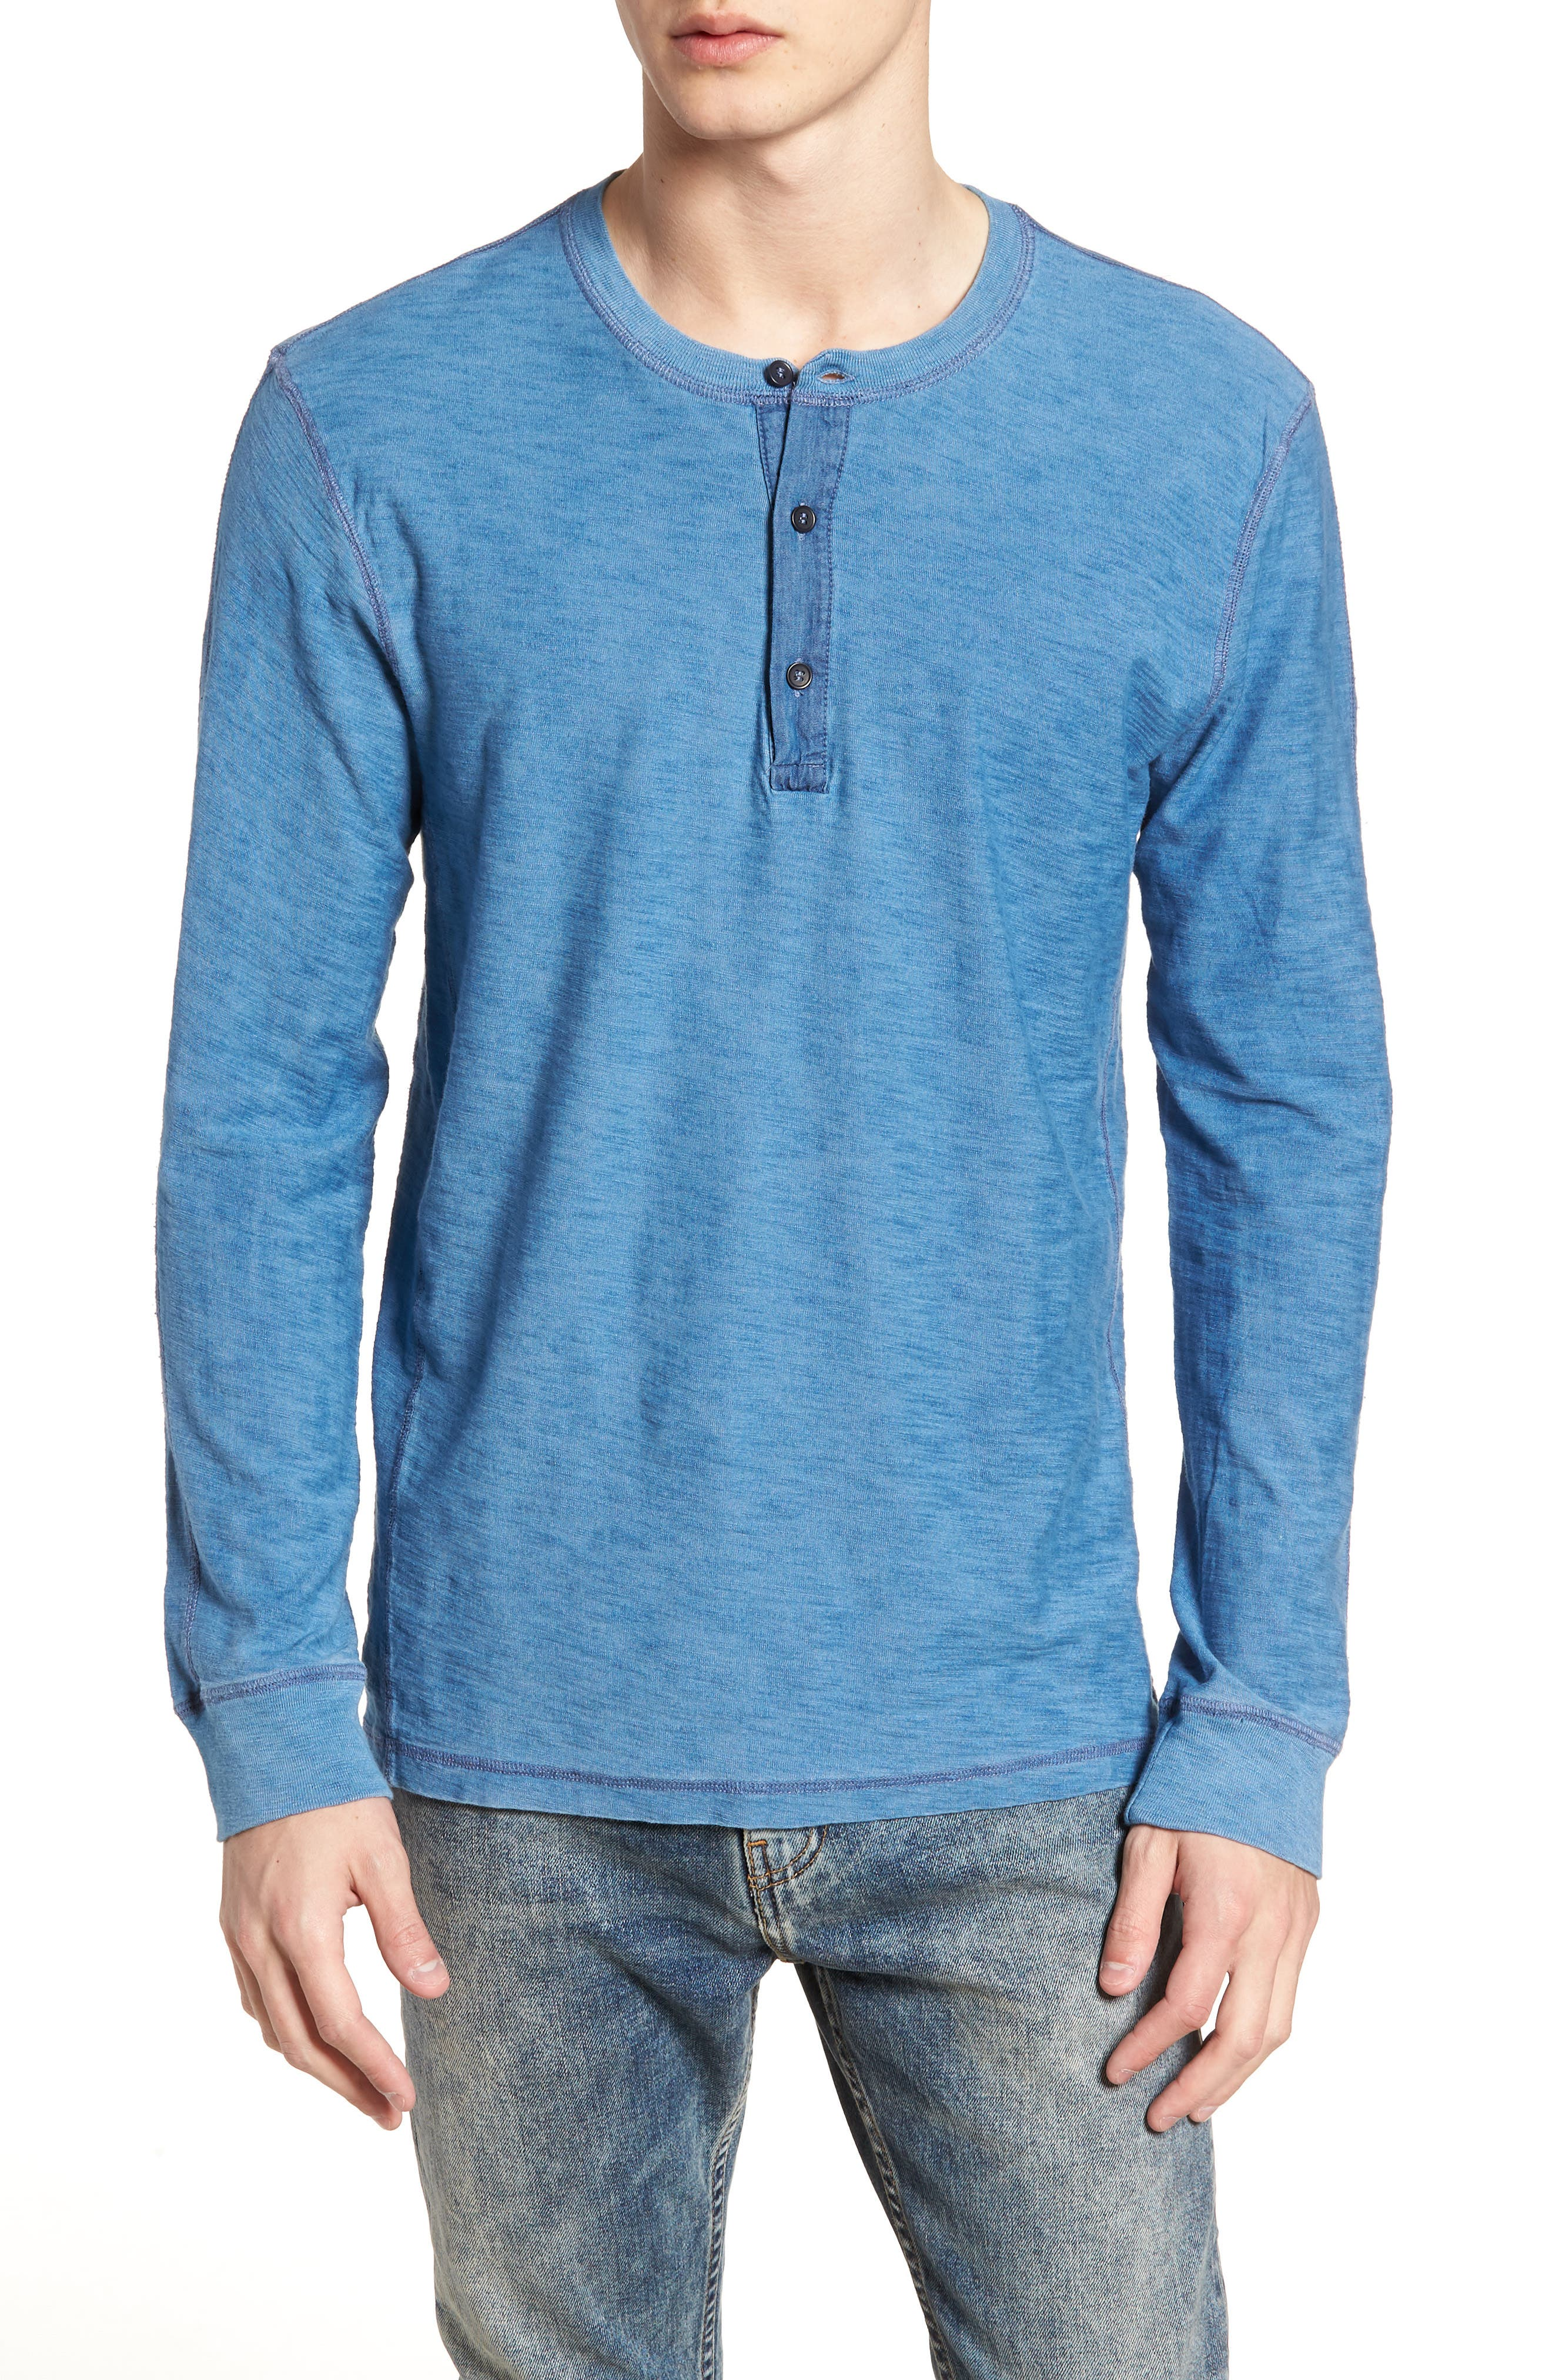 LEVI'S<SUP>®</SUP> MADE & CRAFTED<SUP>™</SUP>,                             Henley,                             Main thumbnail 1, color,                             420